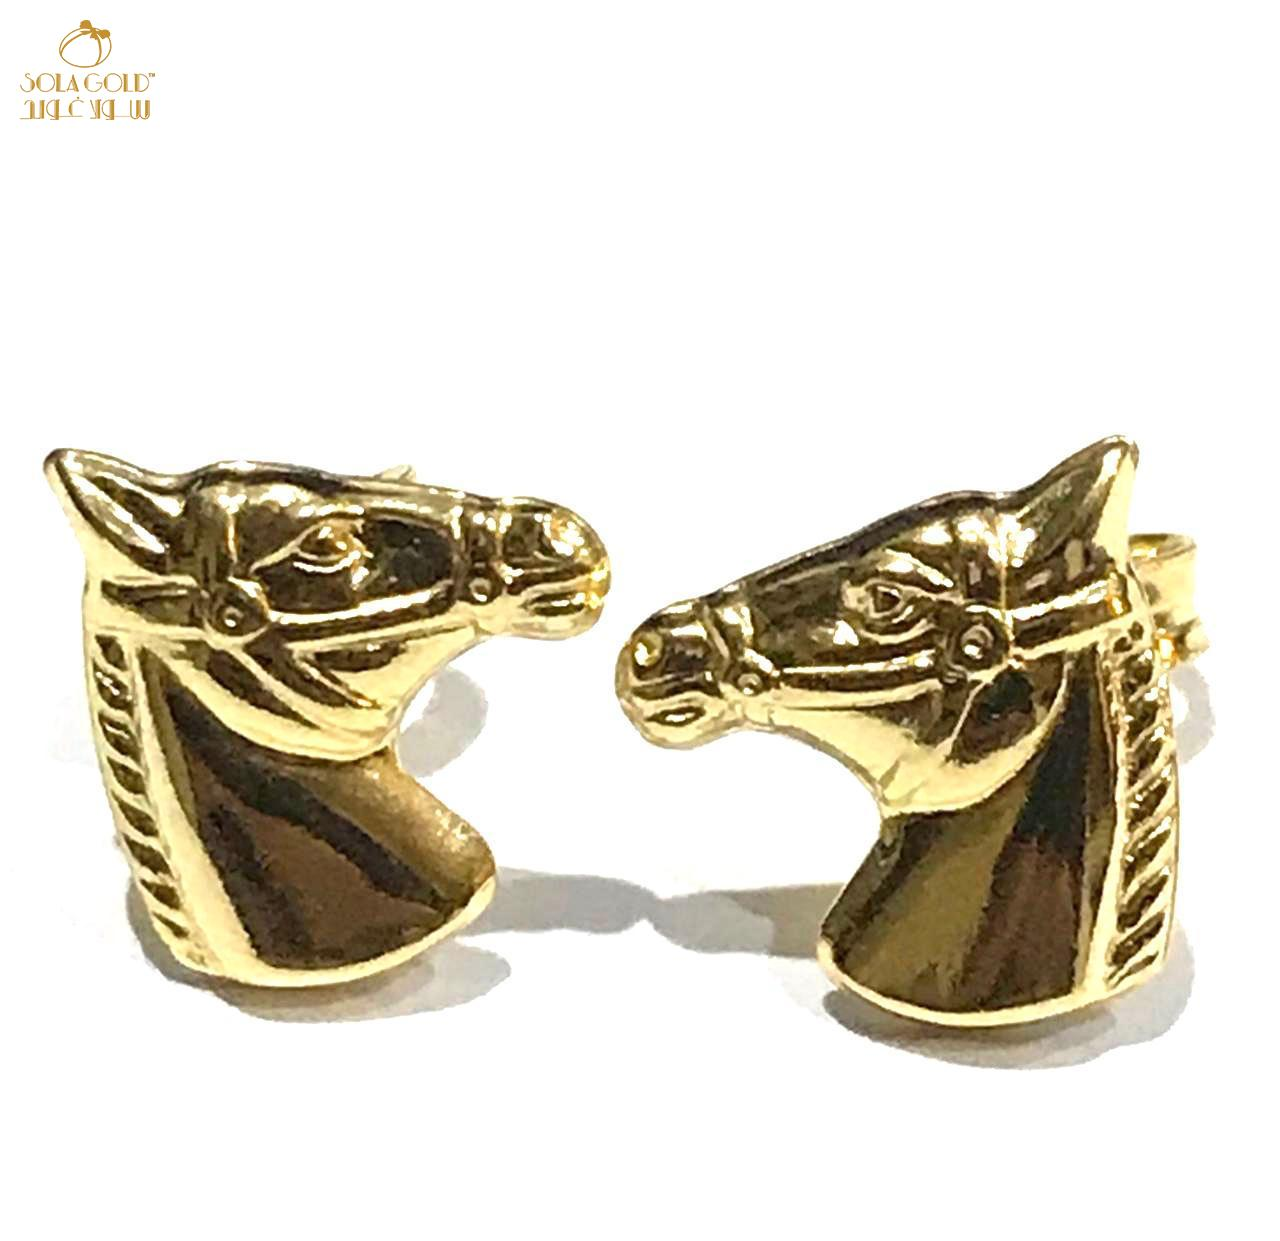 REAL GOLD HORSE STUD EARRING 18K